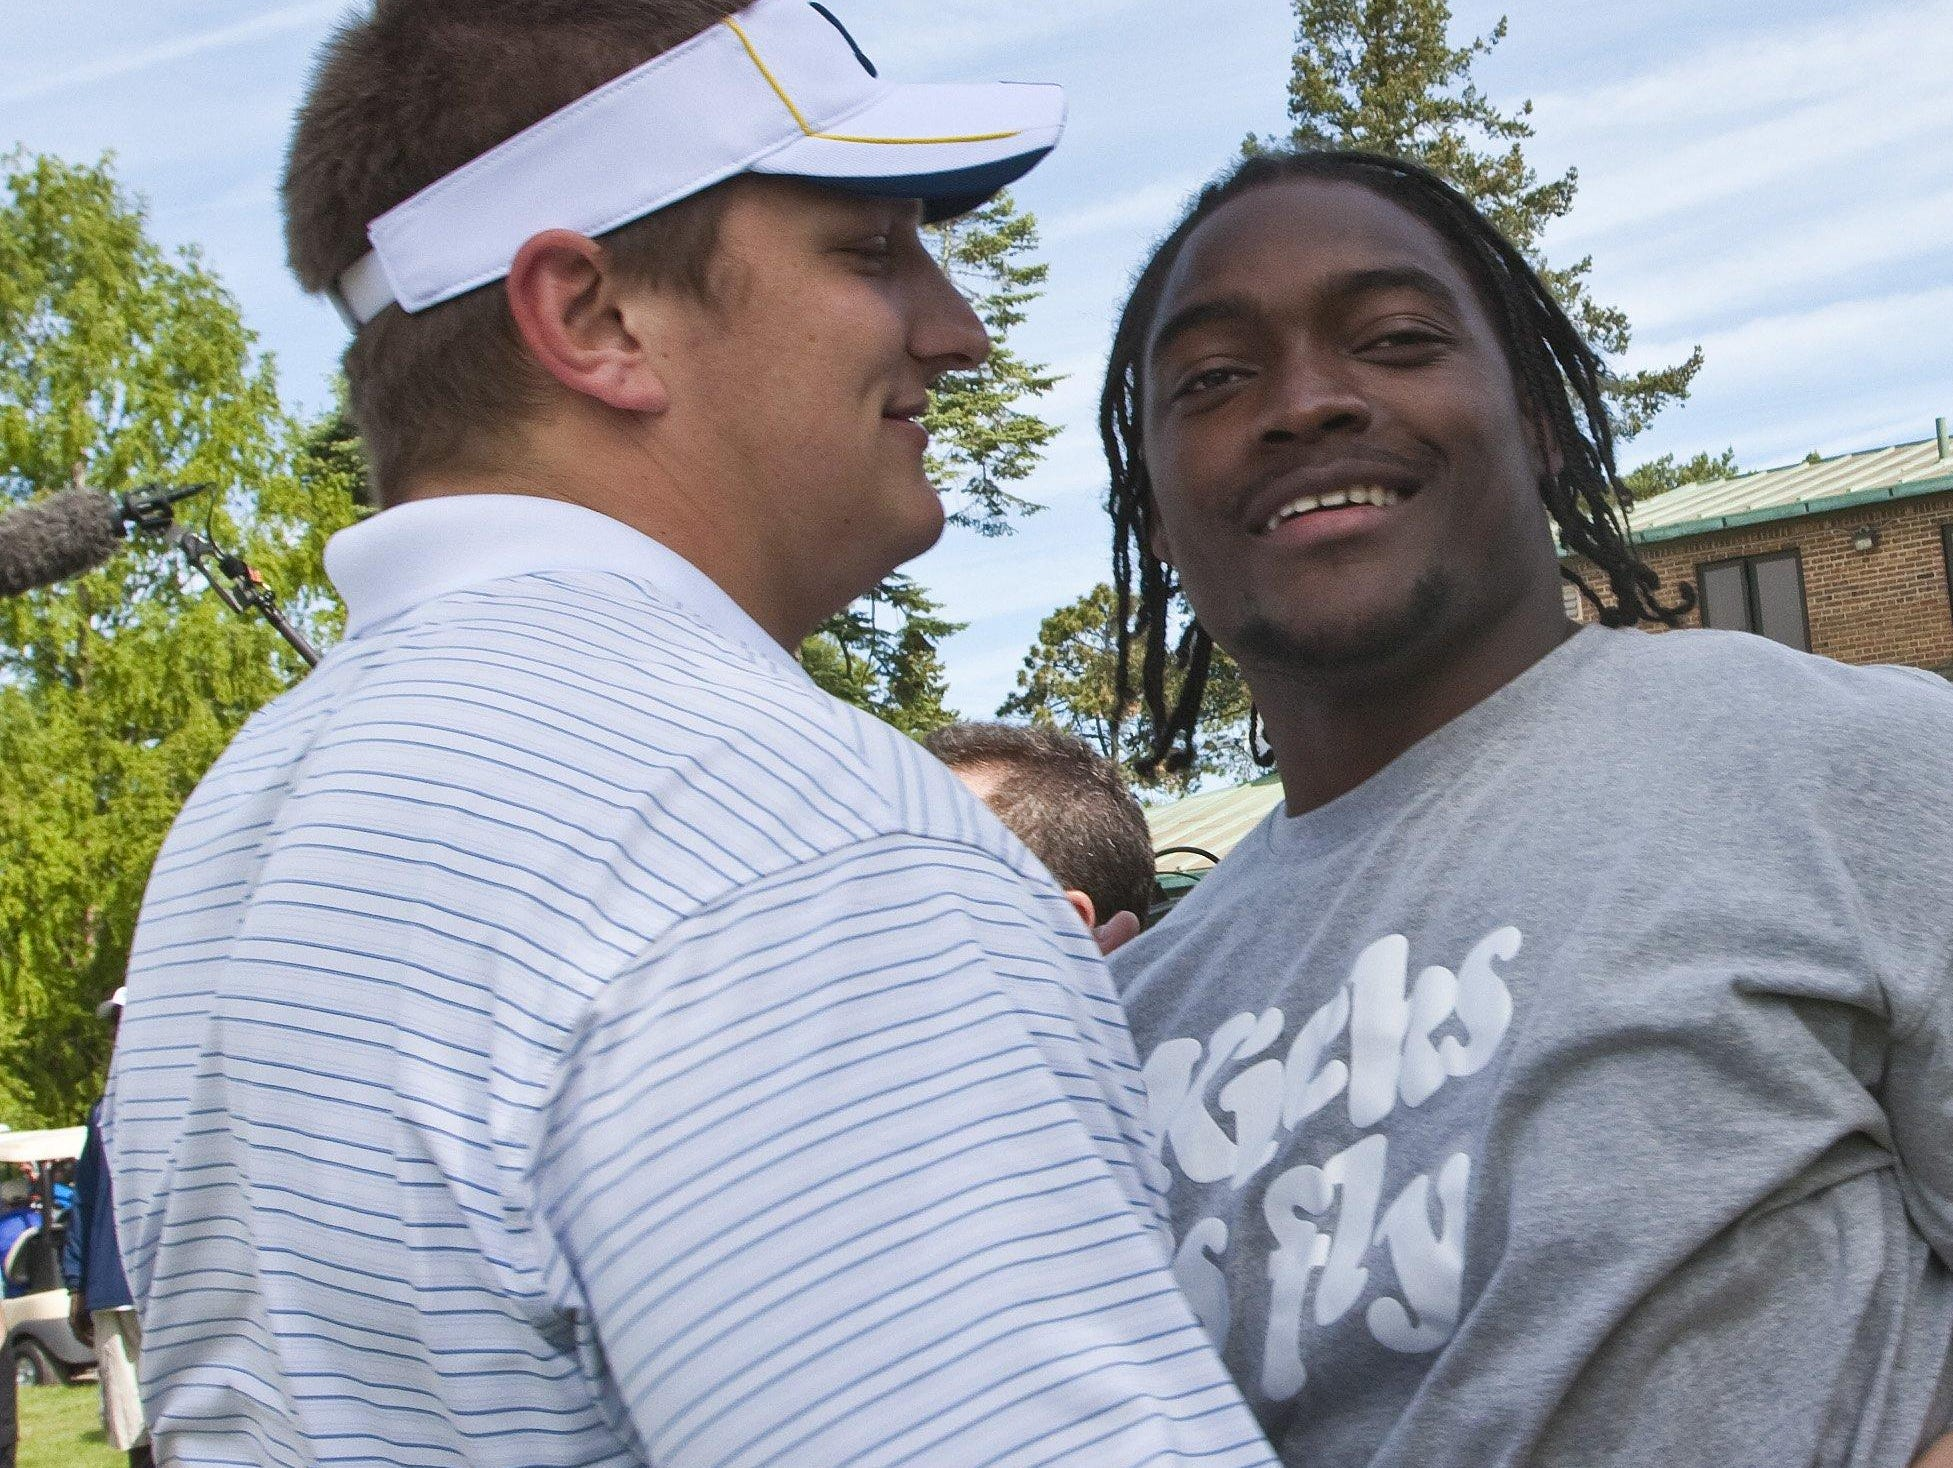 Former Michigan football players Jake Long, left, and Pierre Woods greet each other before a golf tournament in 2010 in Ann Arbor.